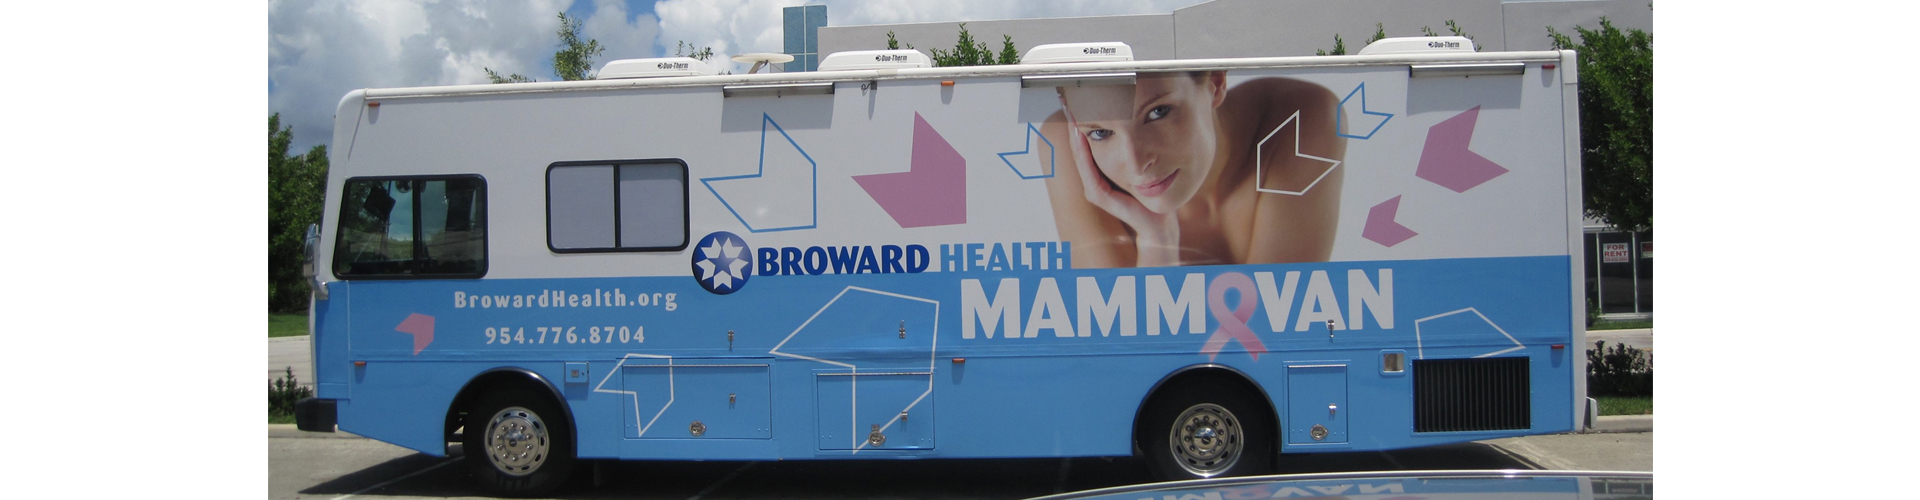 a bus with Broward Health wrap advertising